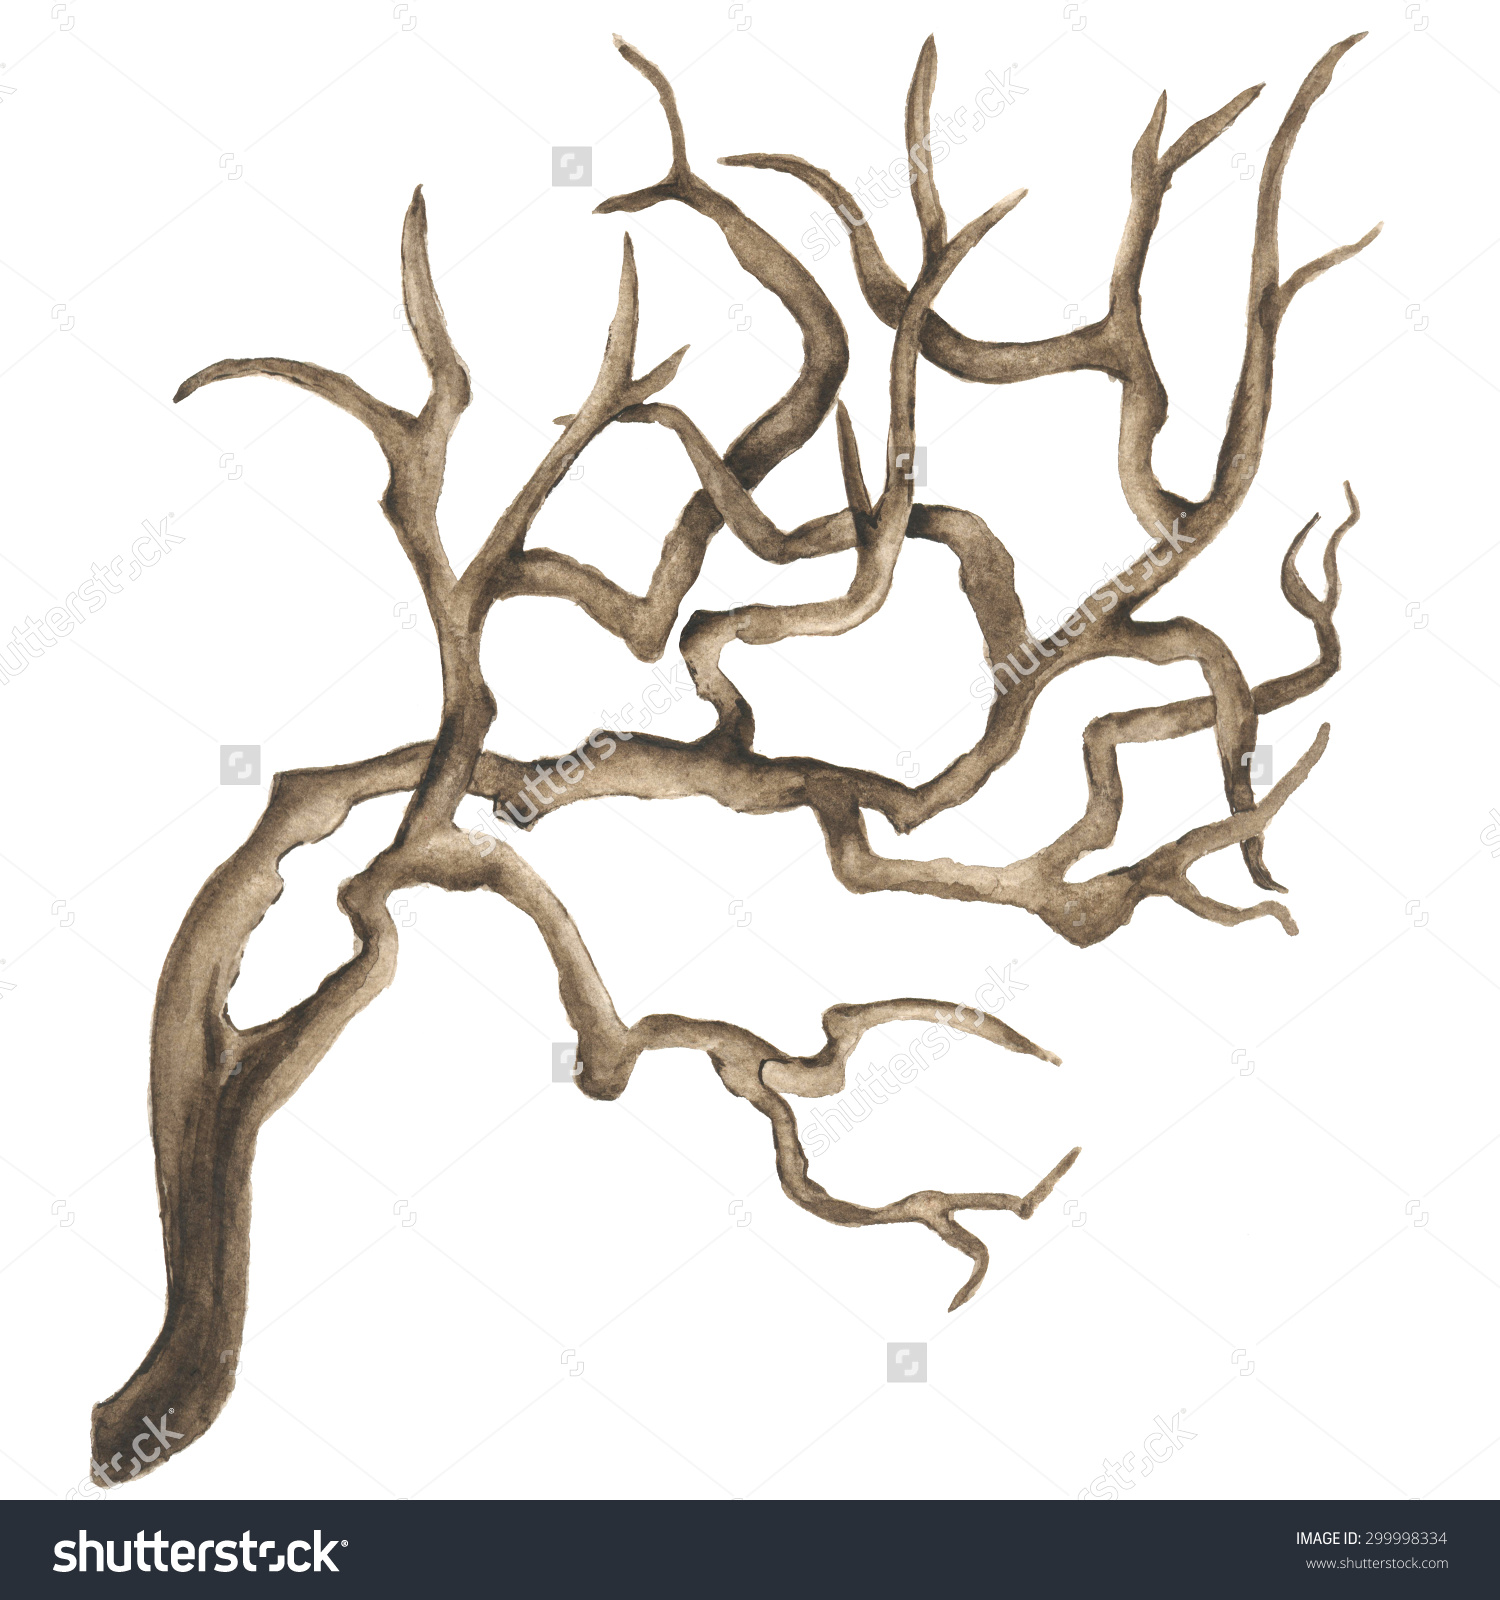 Branch clipart bough Clipart Snag Snag drawings Download